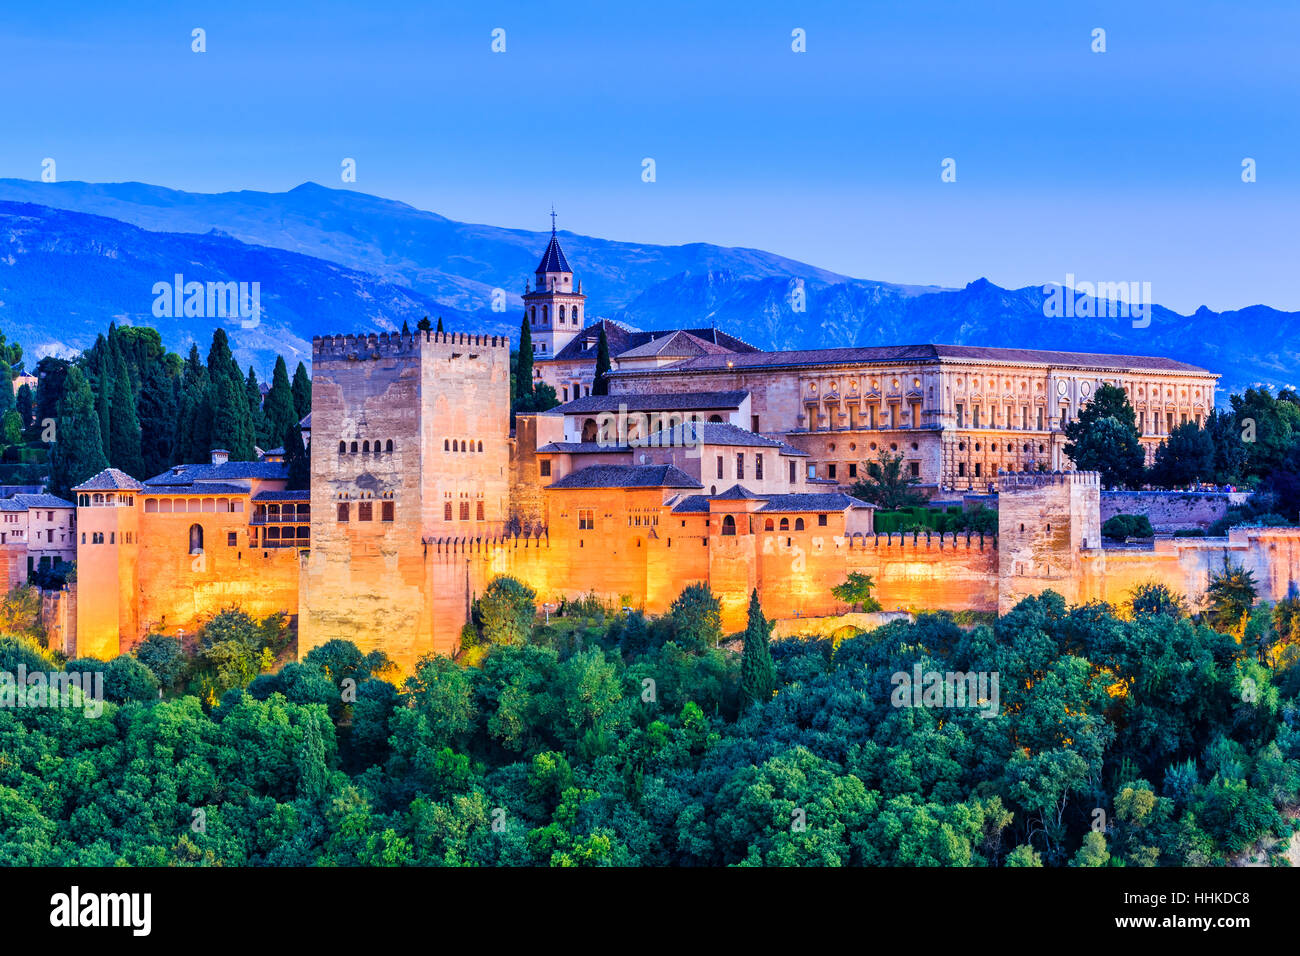 Alhambra of Granada, Spain. - Stock Image